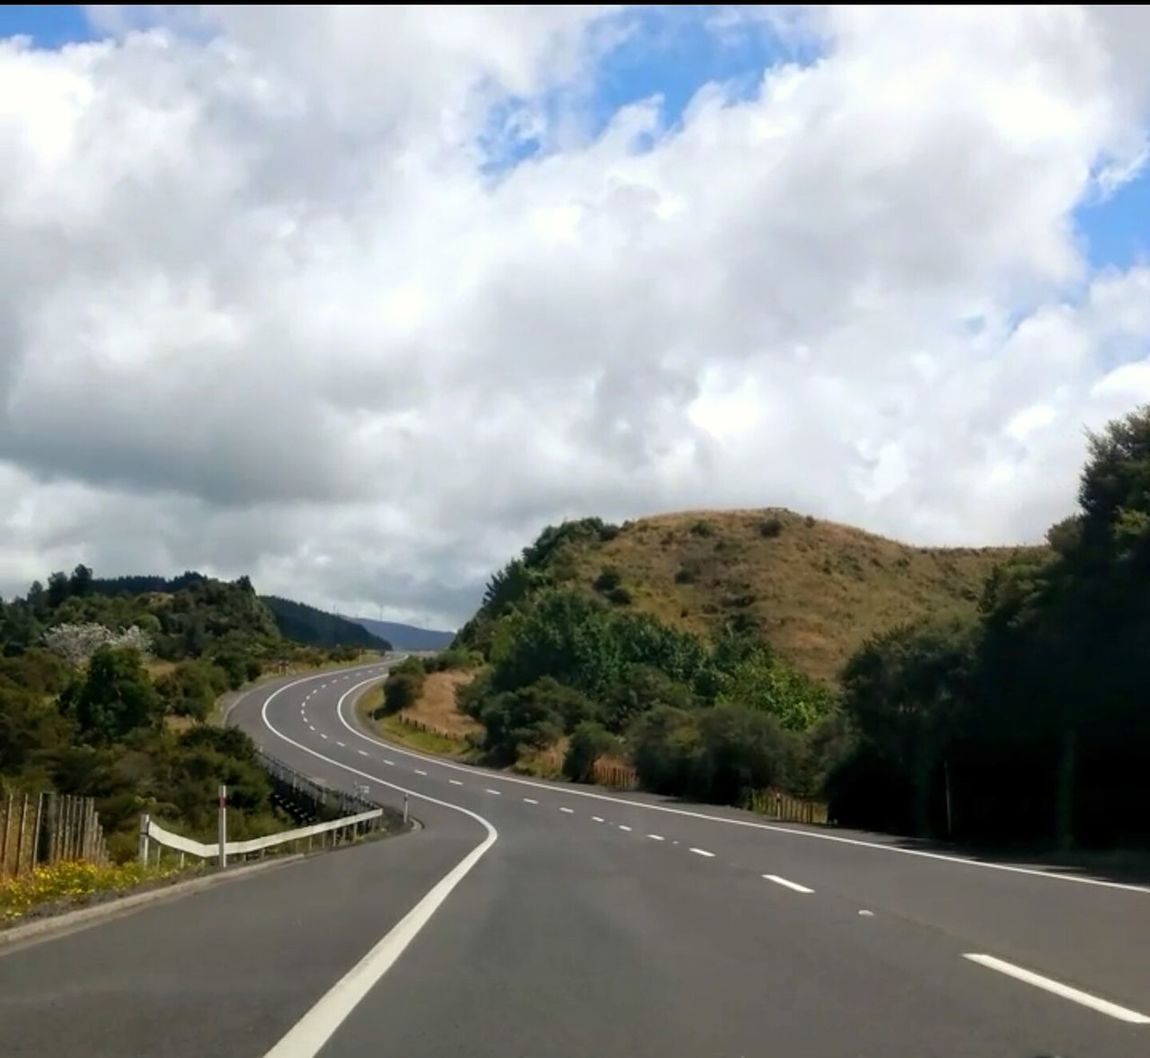 https://youtu.be/VEzLTSF6XaU 😄Im on my way!!!.. Right Turn Road Highway Driving Mountain Outdoors Winding Road Cloud - Sky No People Traffic Circle Betterlandscapes Nature Sky Individual Perspective Women Who Inspire You Personal Perspective Healthy Lifestyle Summer NZ Style Adventure Road Trip Travelling West Im On My Way Creative Mood Windy Road Tranquil Scene